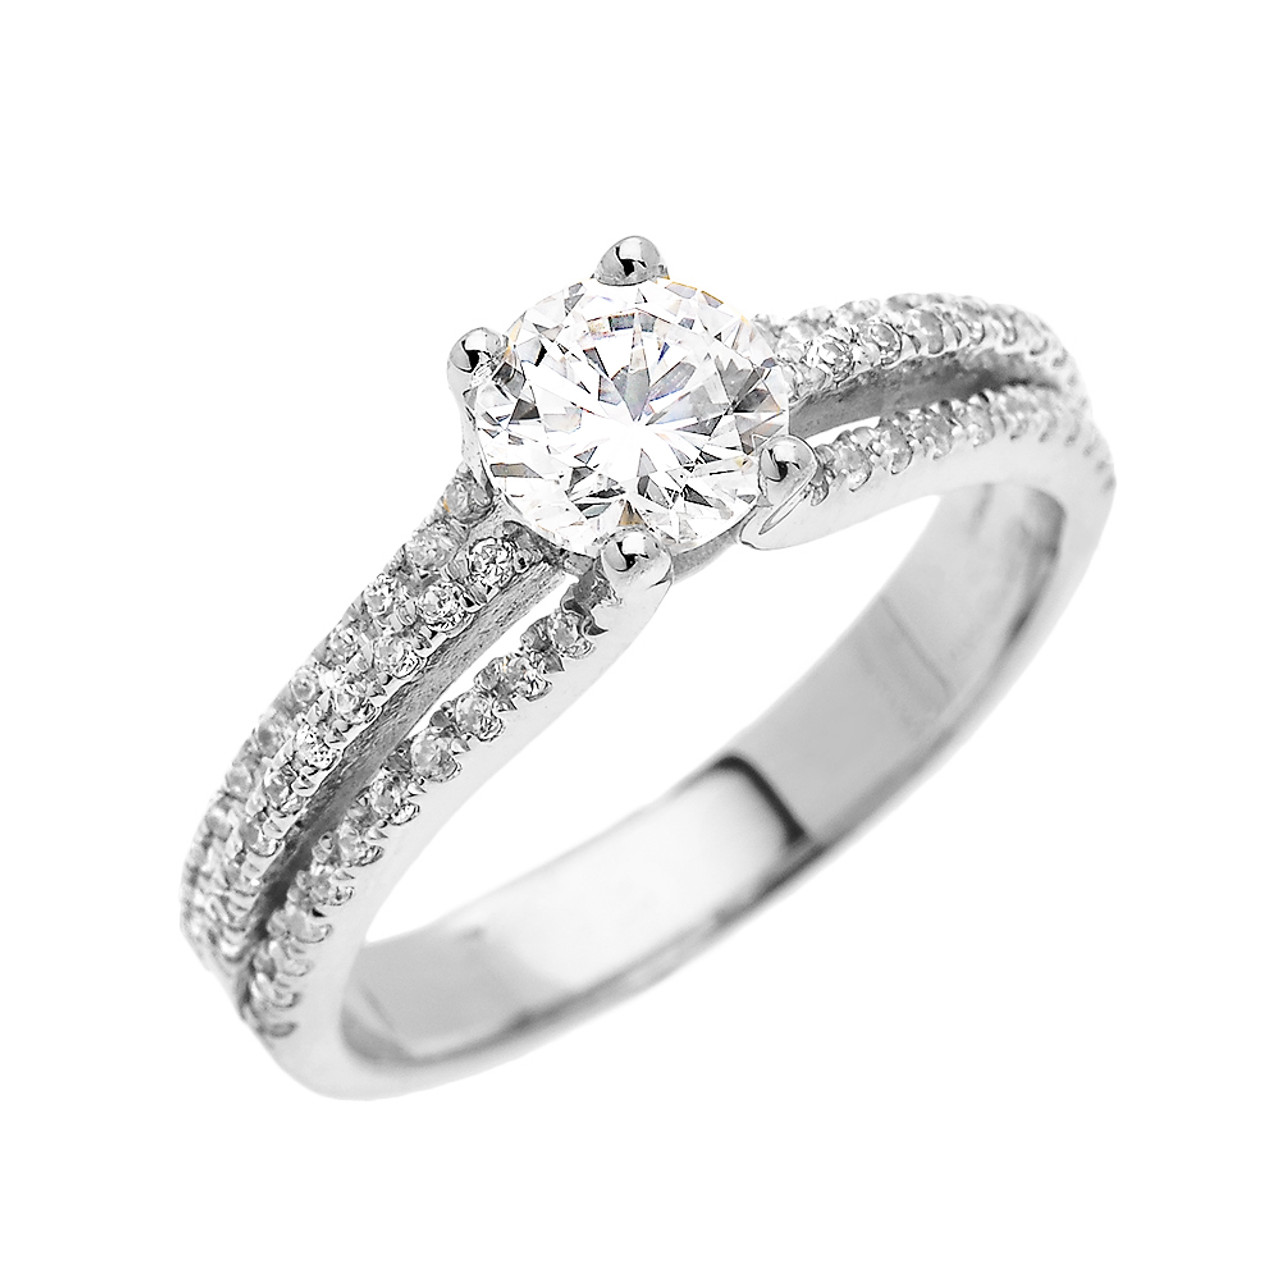 White Gold Micro Pave Modern Solitaire Cz Ring